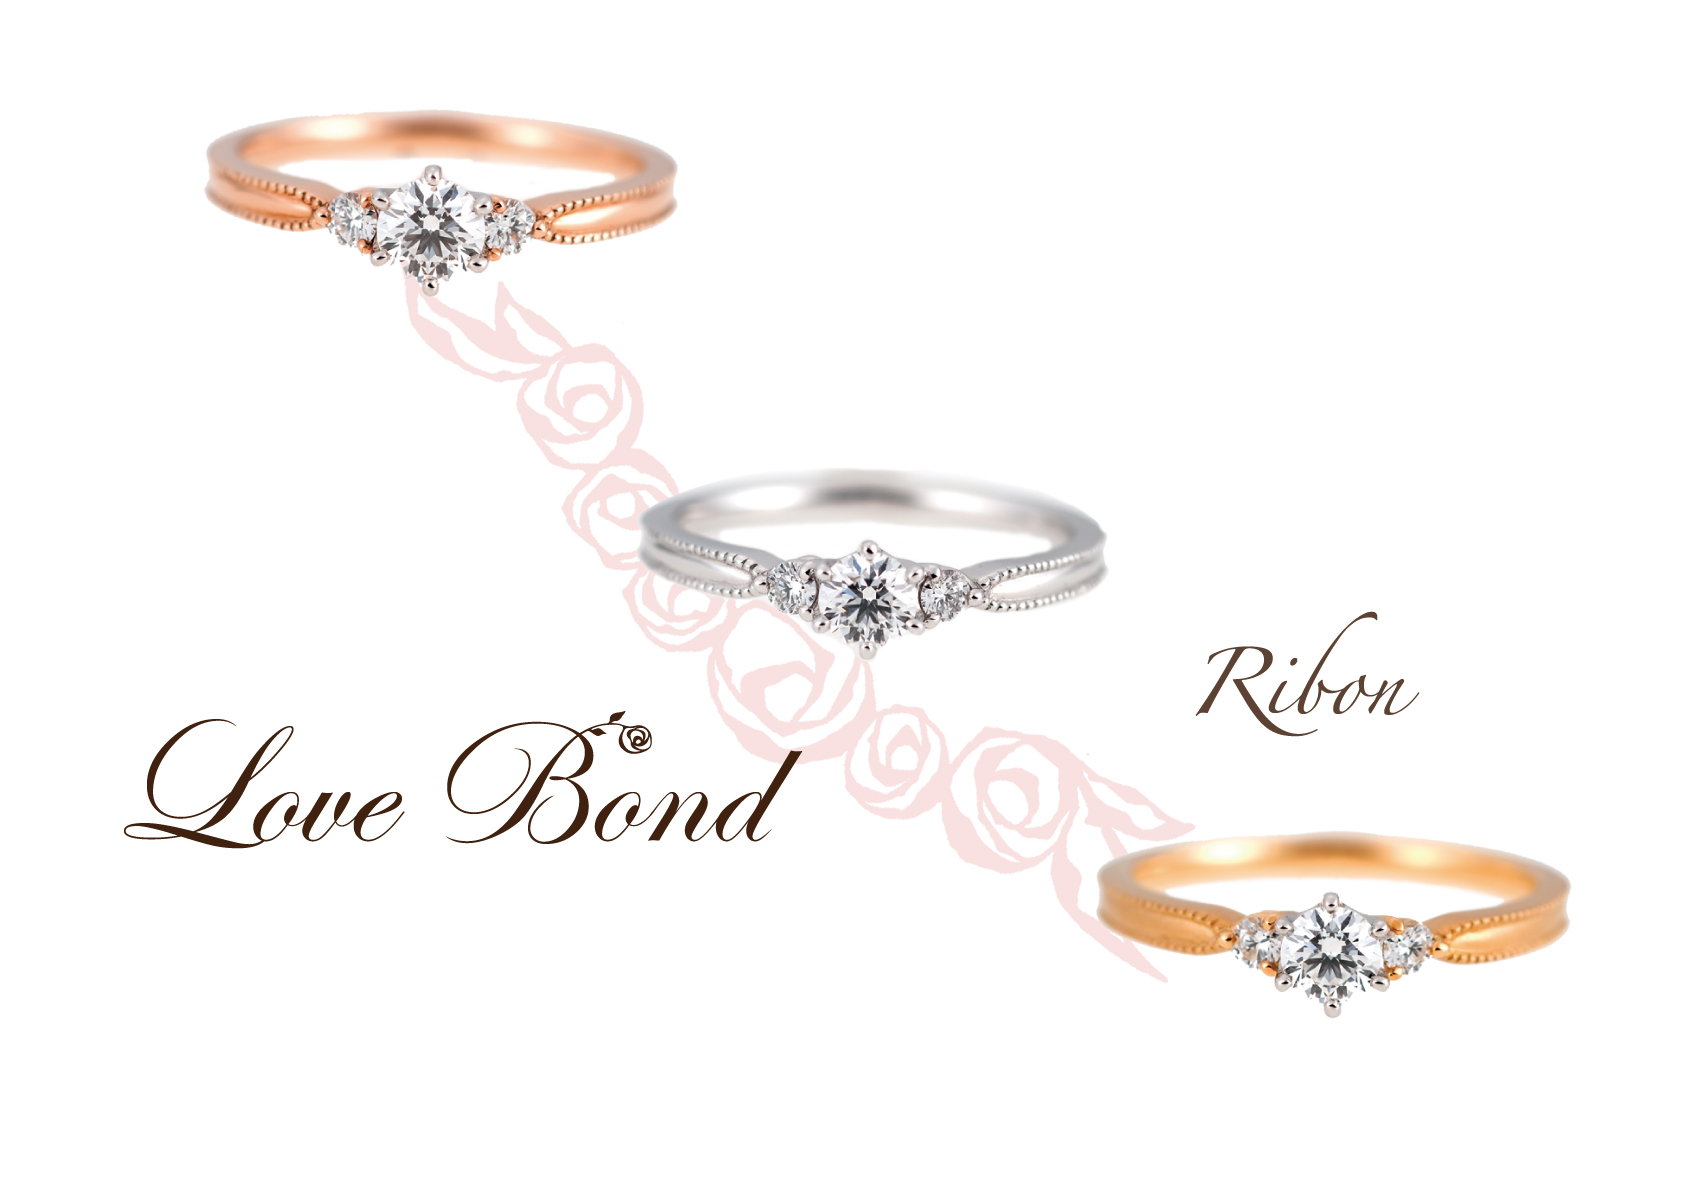 Love Bond「June Bride Fair」5/29(Mon.)~6/30(Fri.)